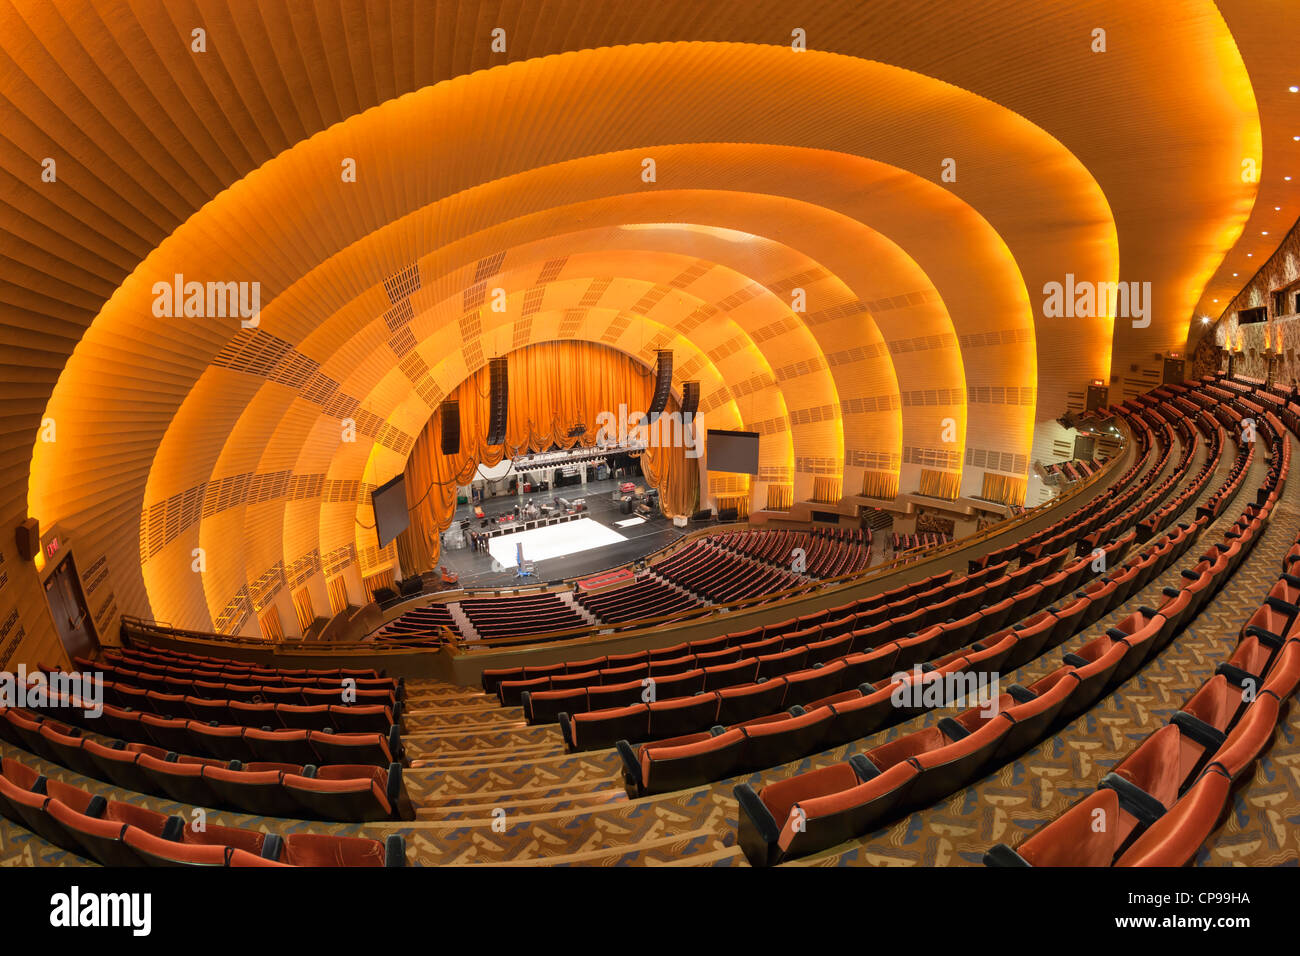 The view of the stage from the balcony as workers prepare for a show in historic Radio City Music Hall in New York - Stock Image